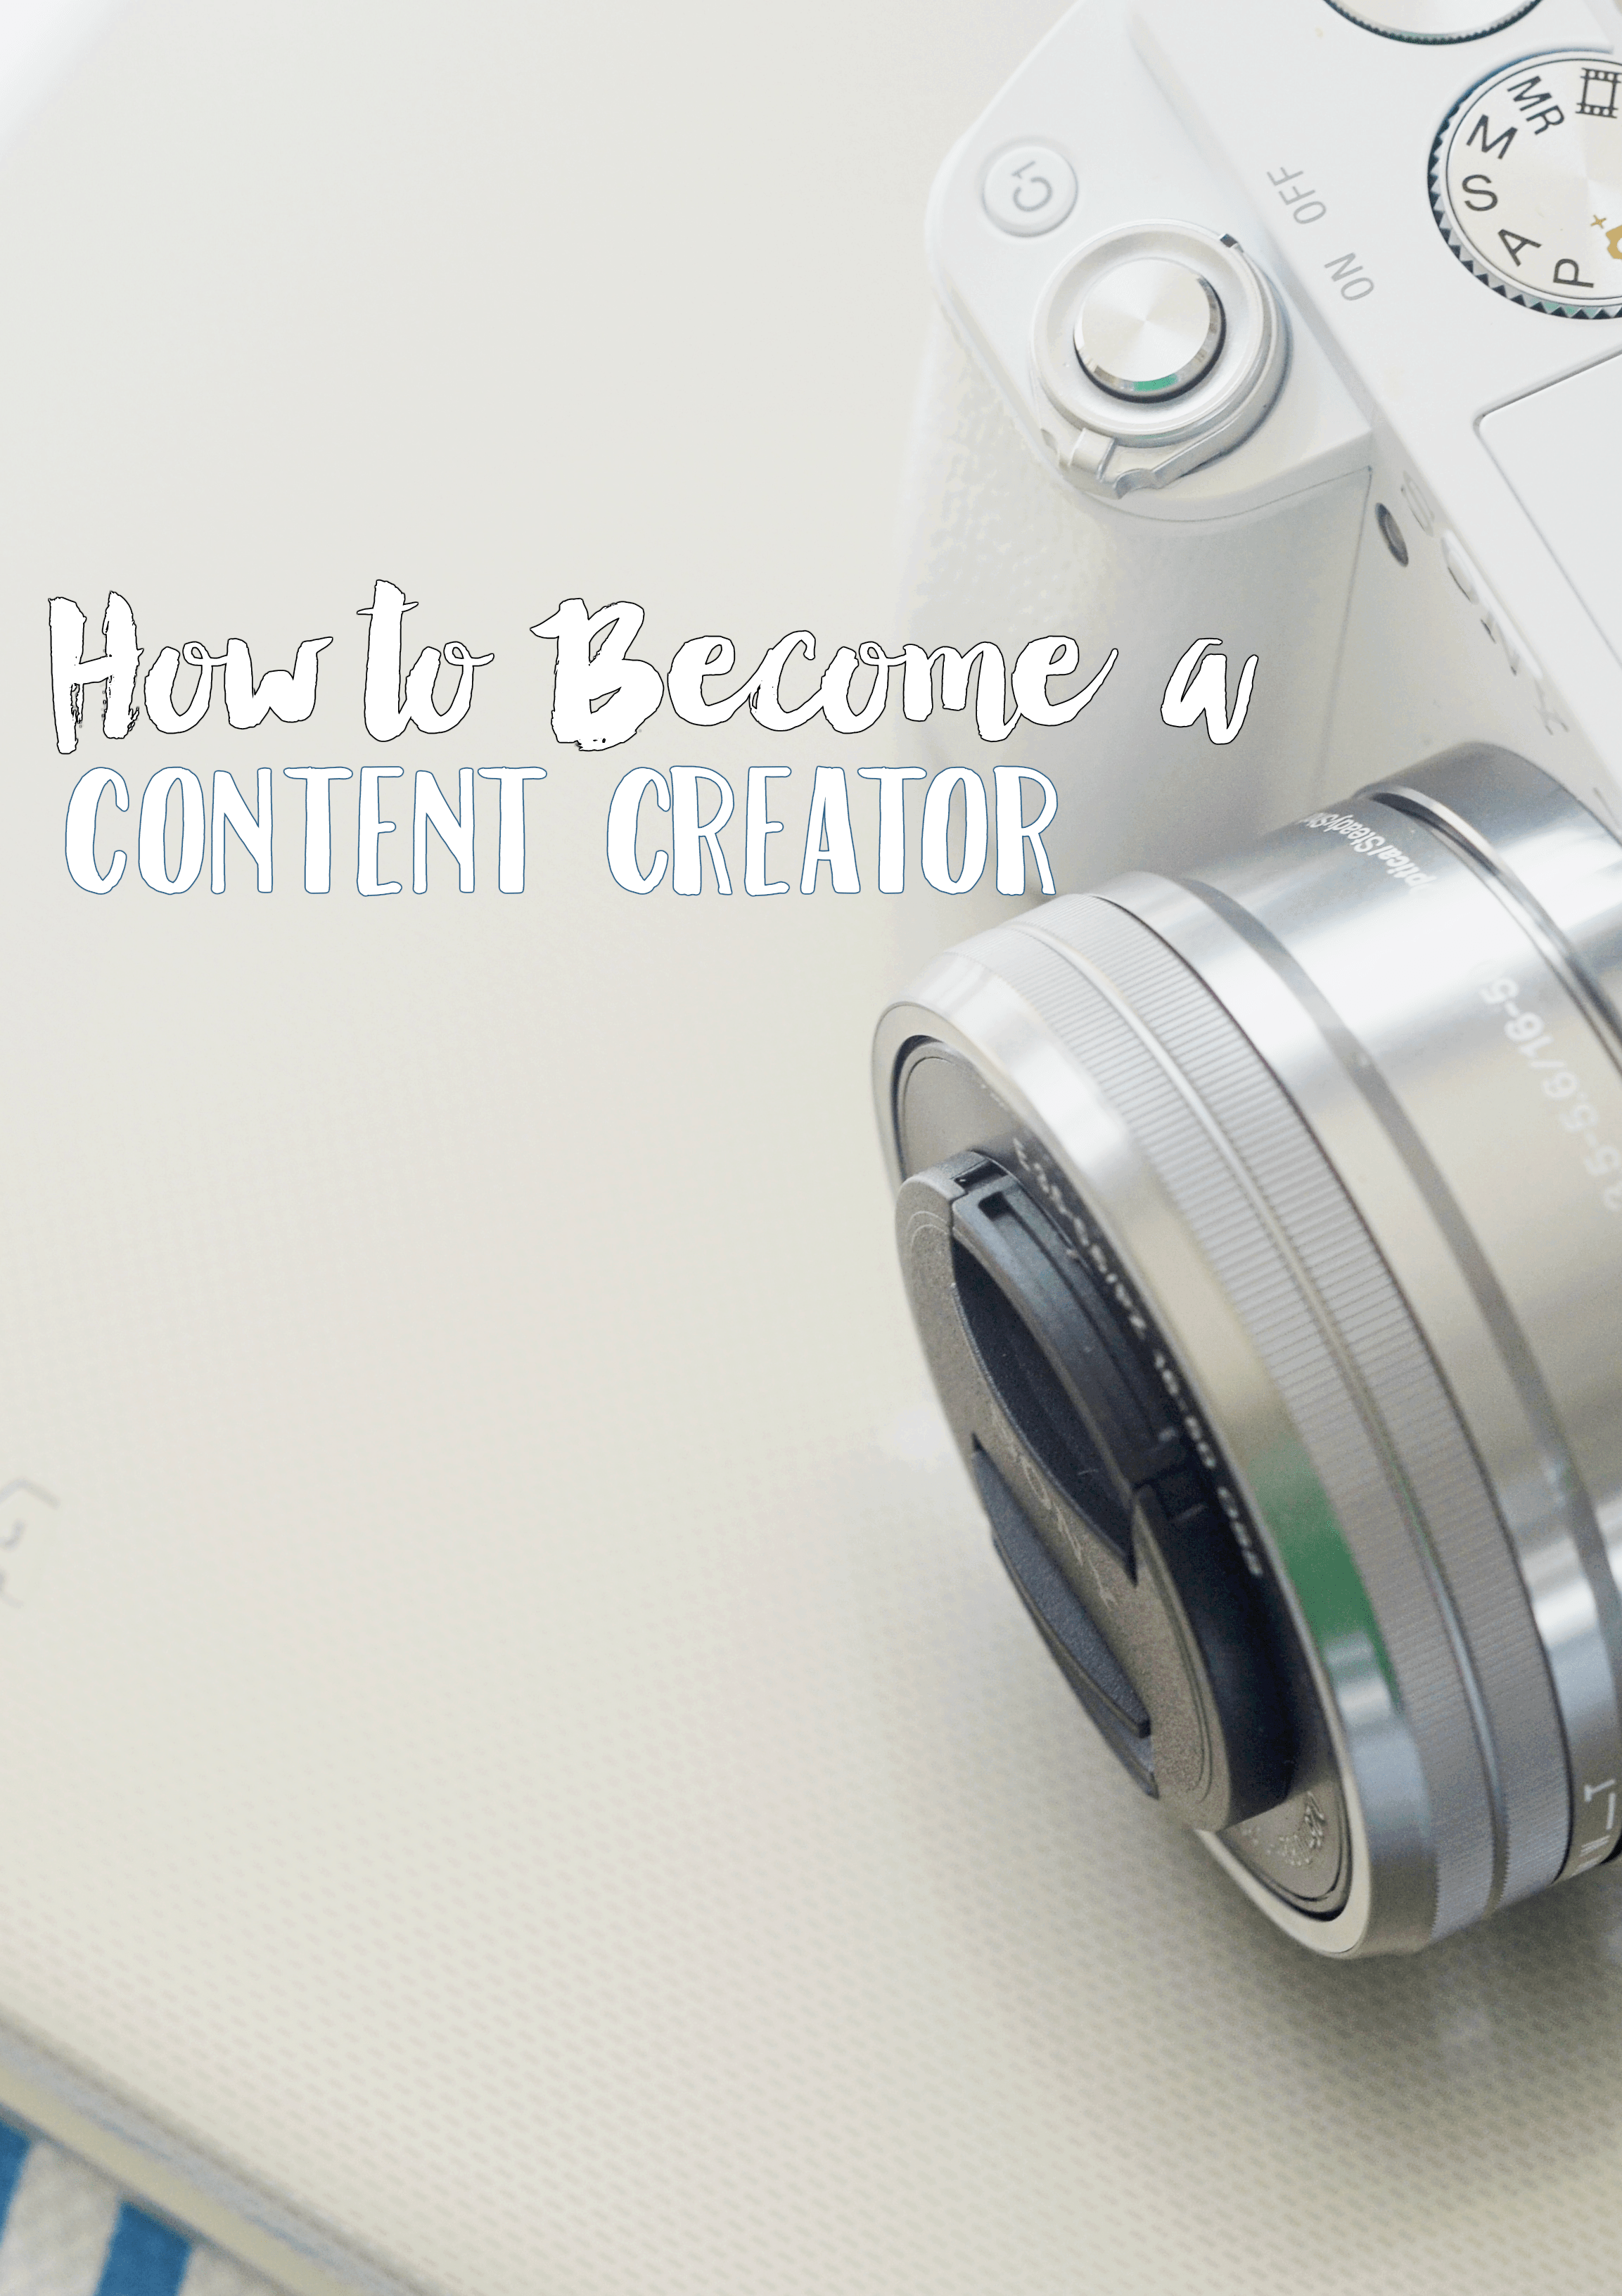 How to Become a Content Creator